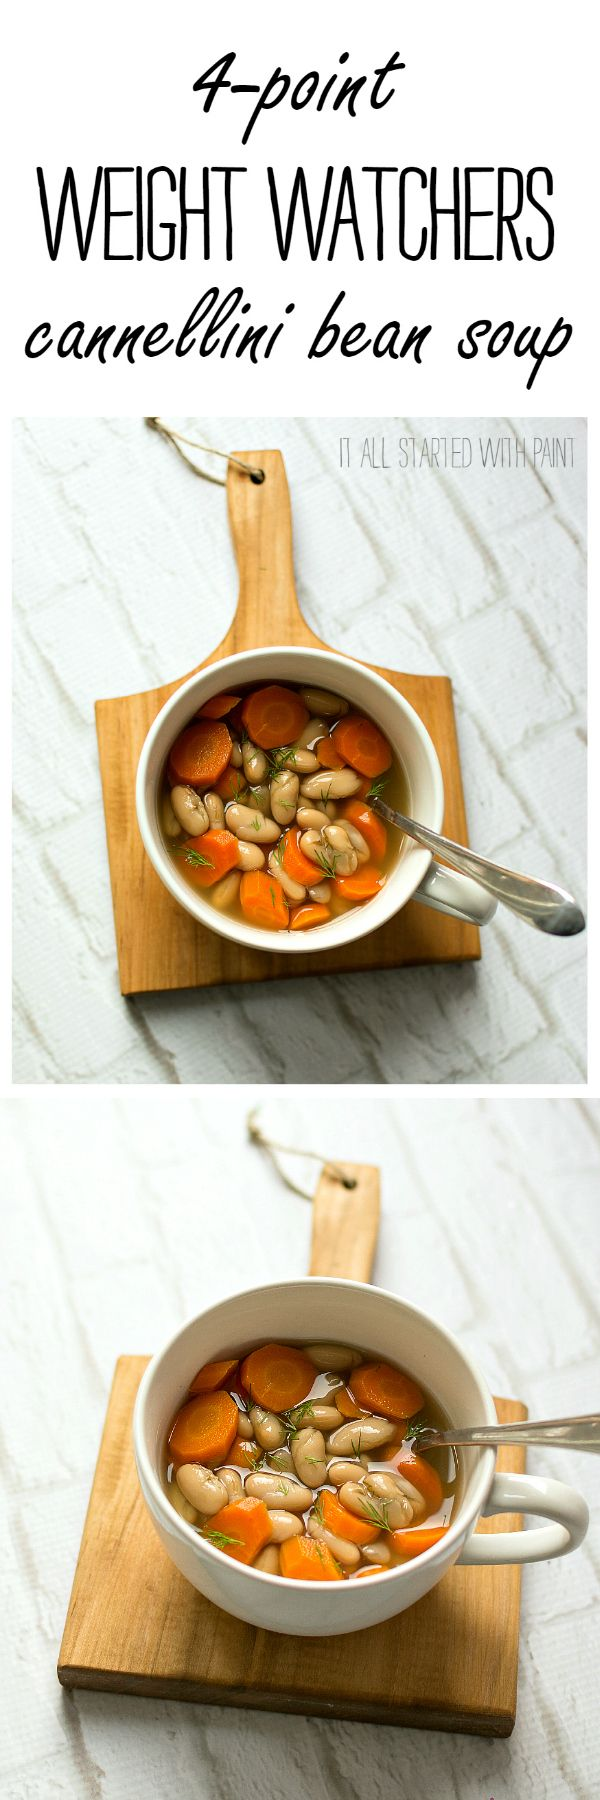 Bean Soup Recipe - Weight Watchers Soup Recipe - Weight Watchers Recipe Ideas - Weight Watcher Lunch Ideas @ It All Started With Paint www.itallstartedwithpaint.com